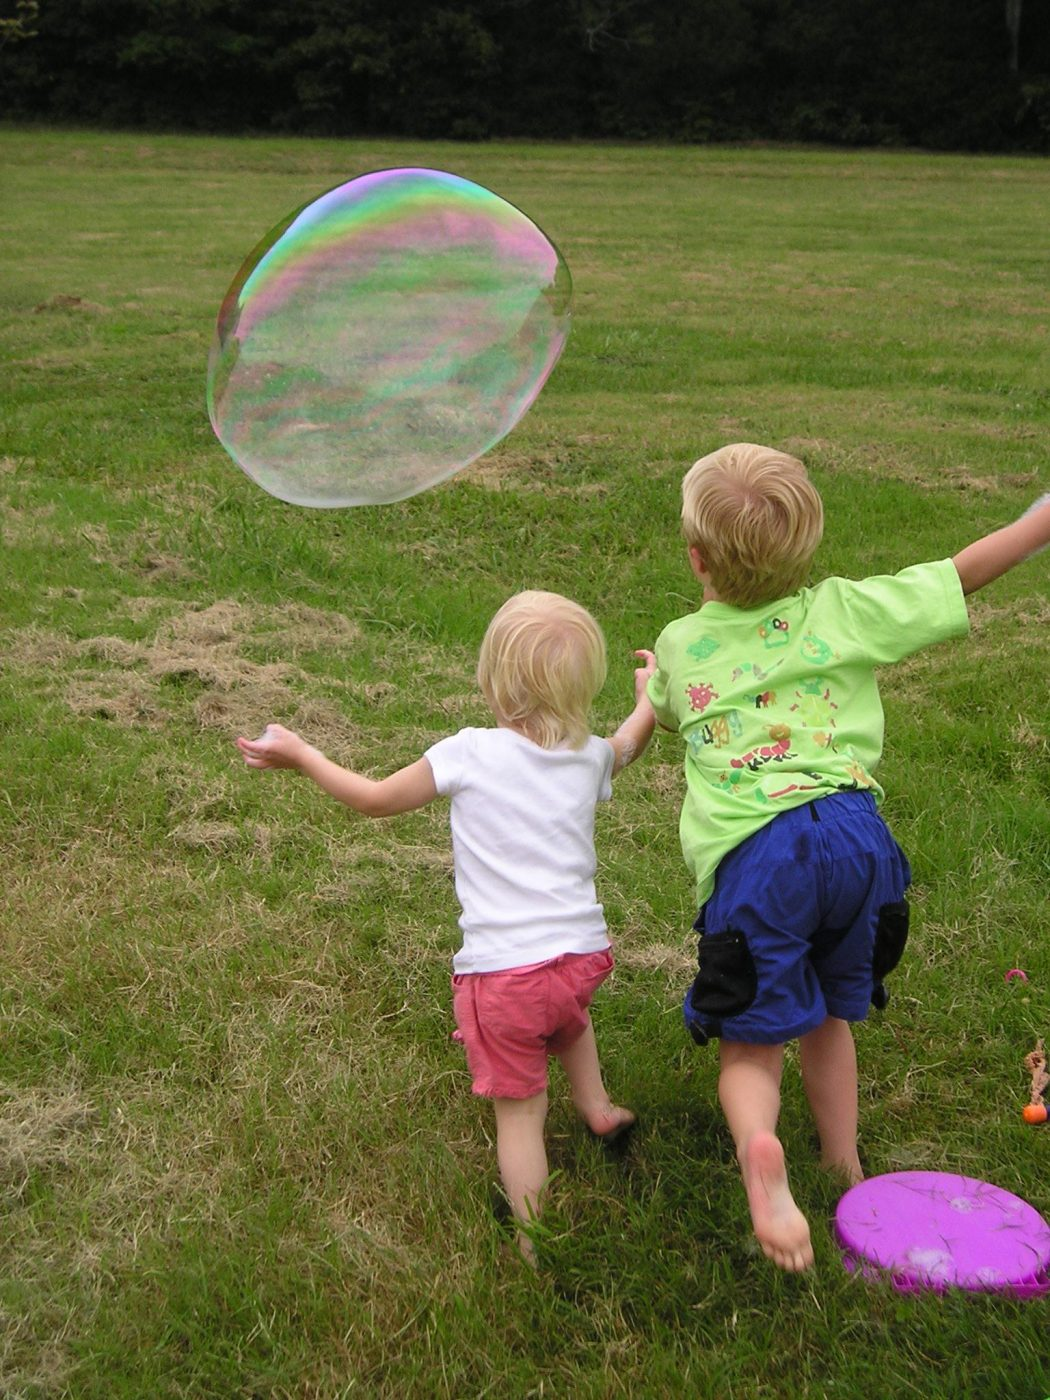 kids-chase-a-bubble-at-a-family-picnic, by Ned Horton